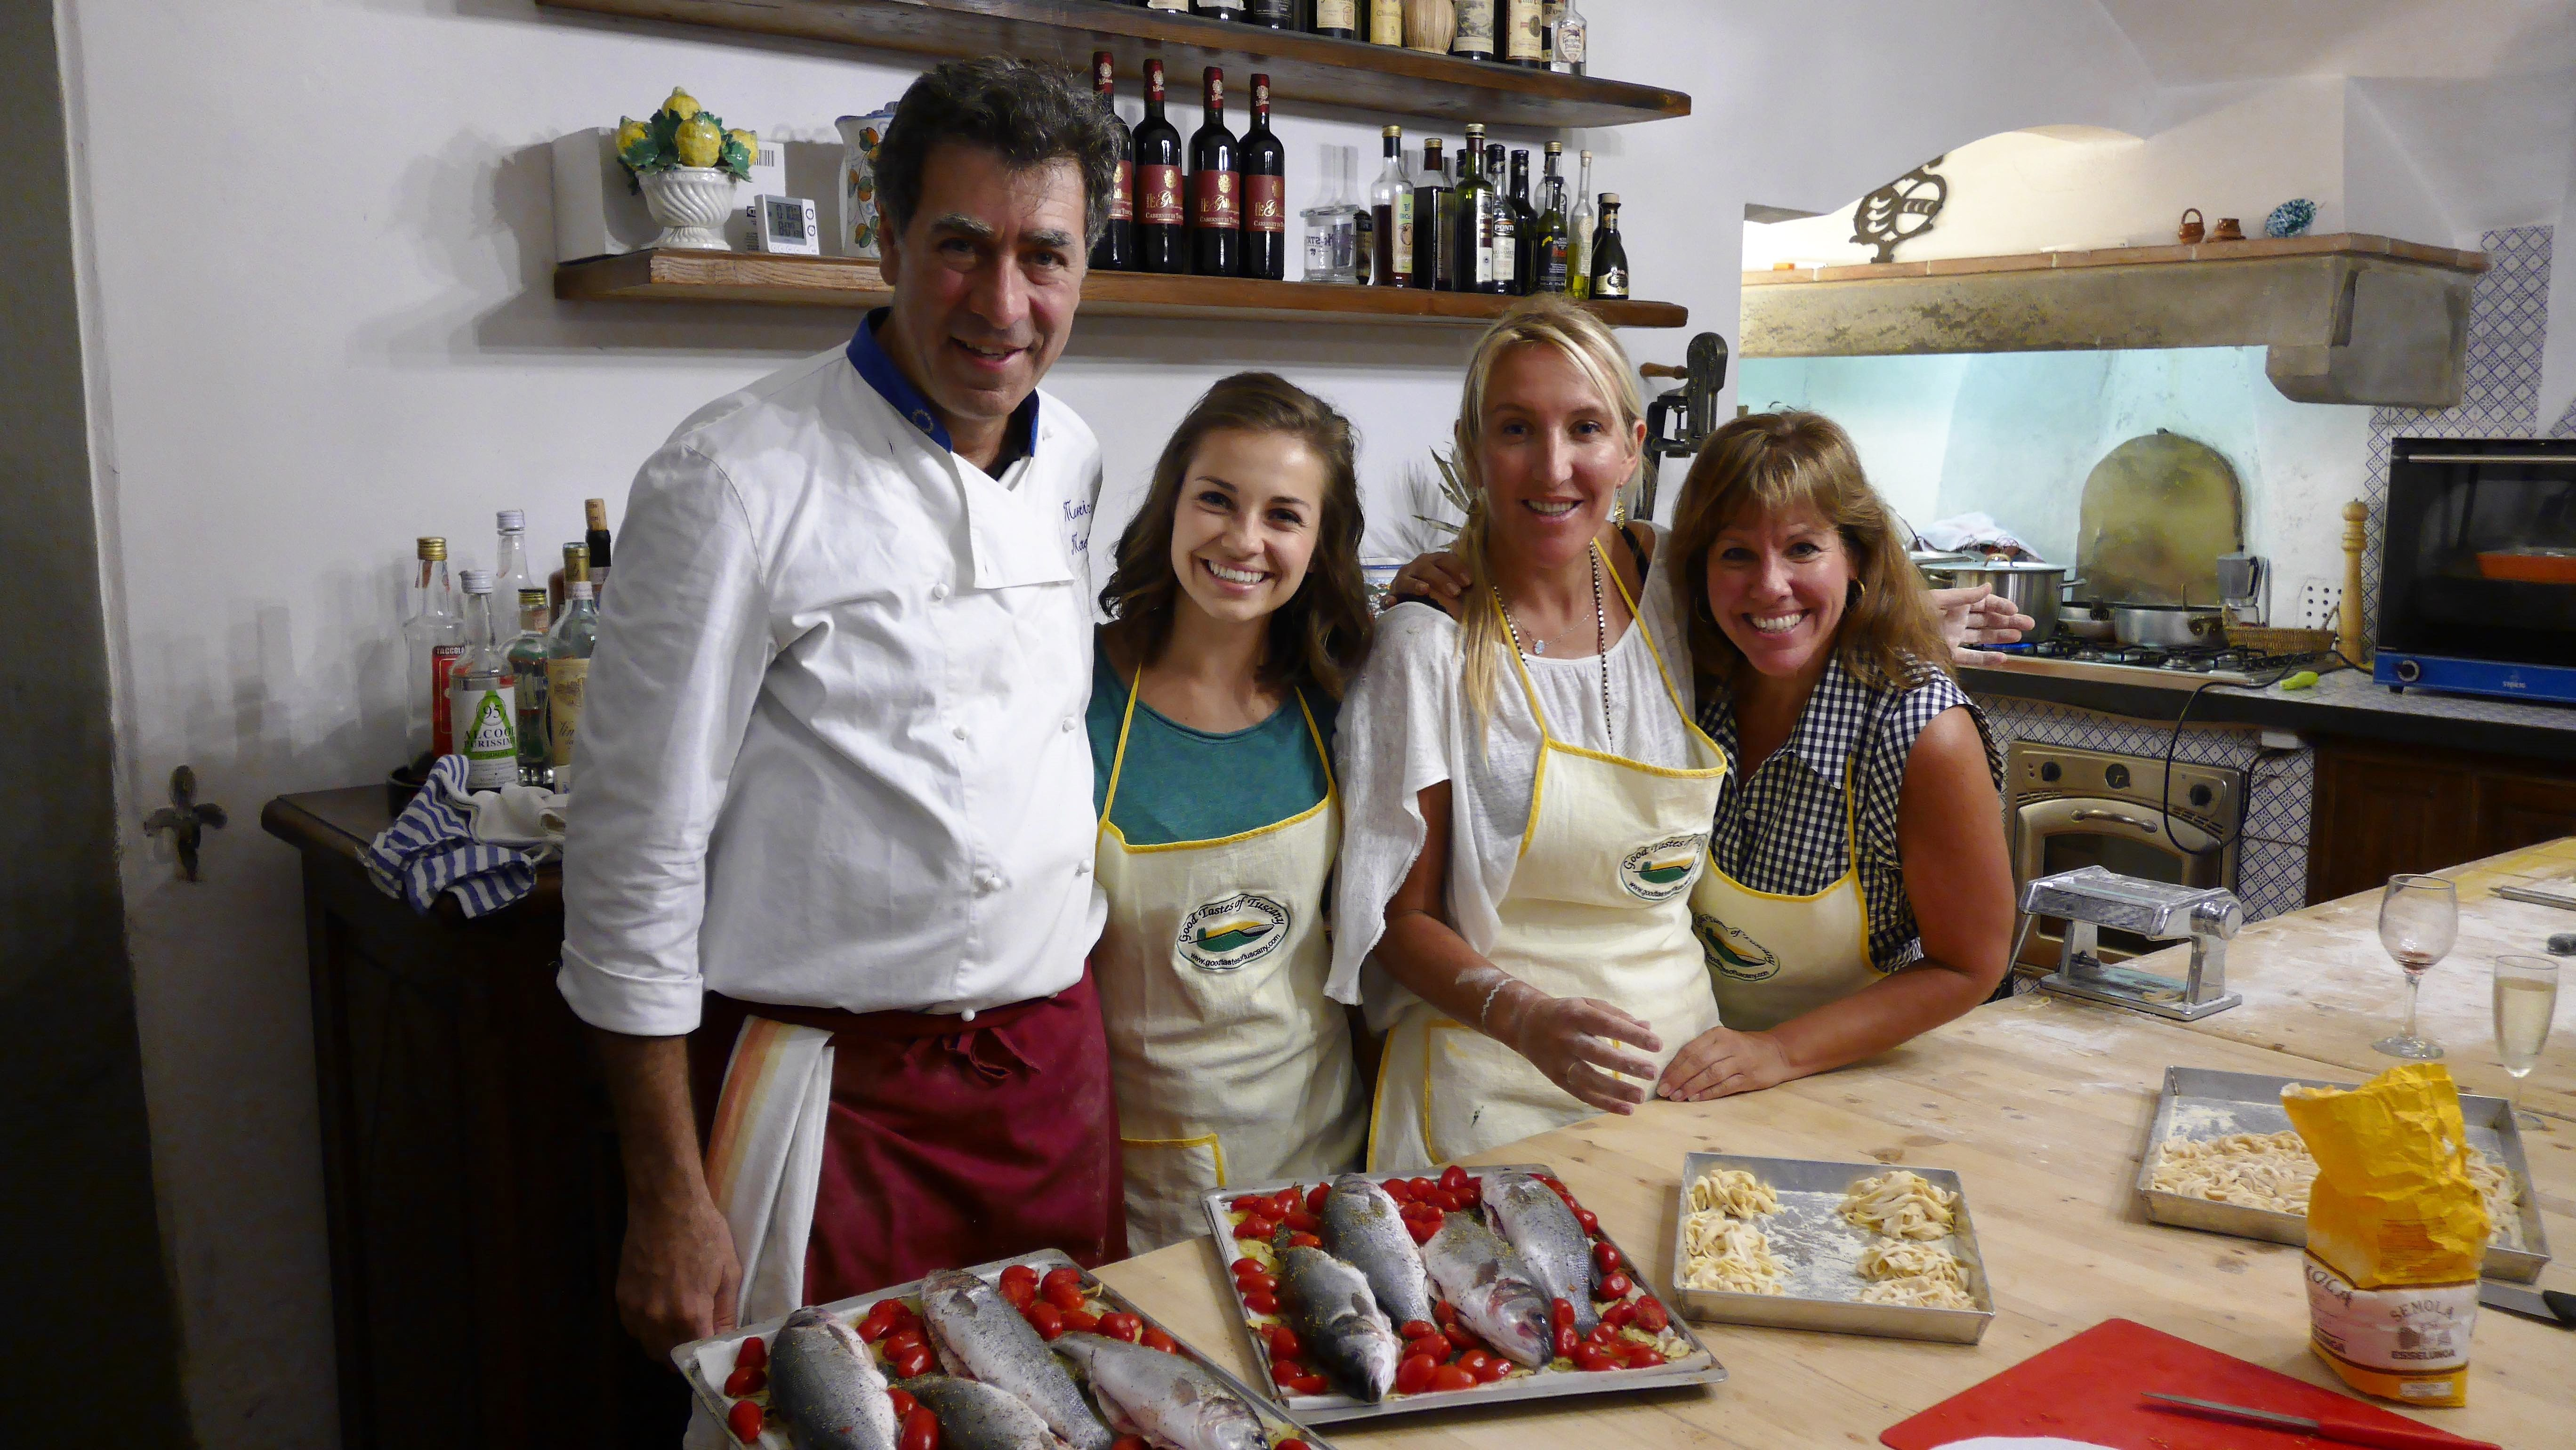 Cooking Class In A 12th Century Renaissance Castle With